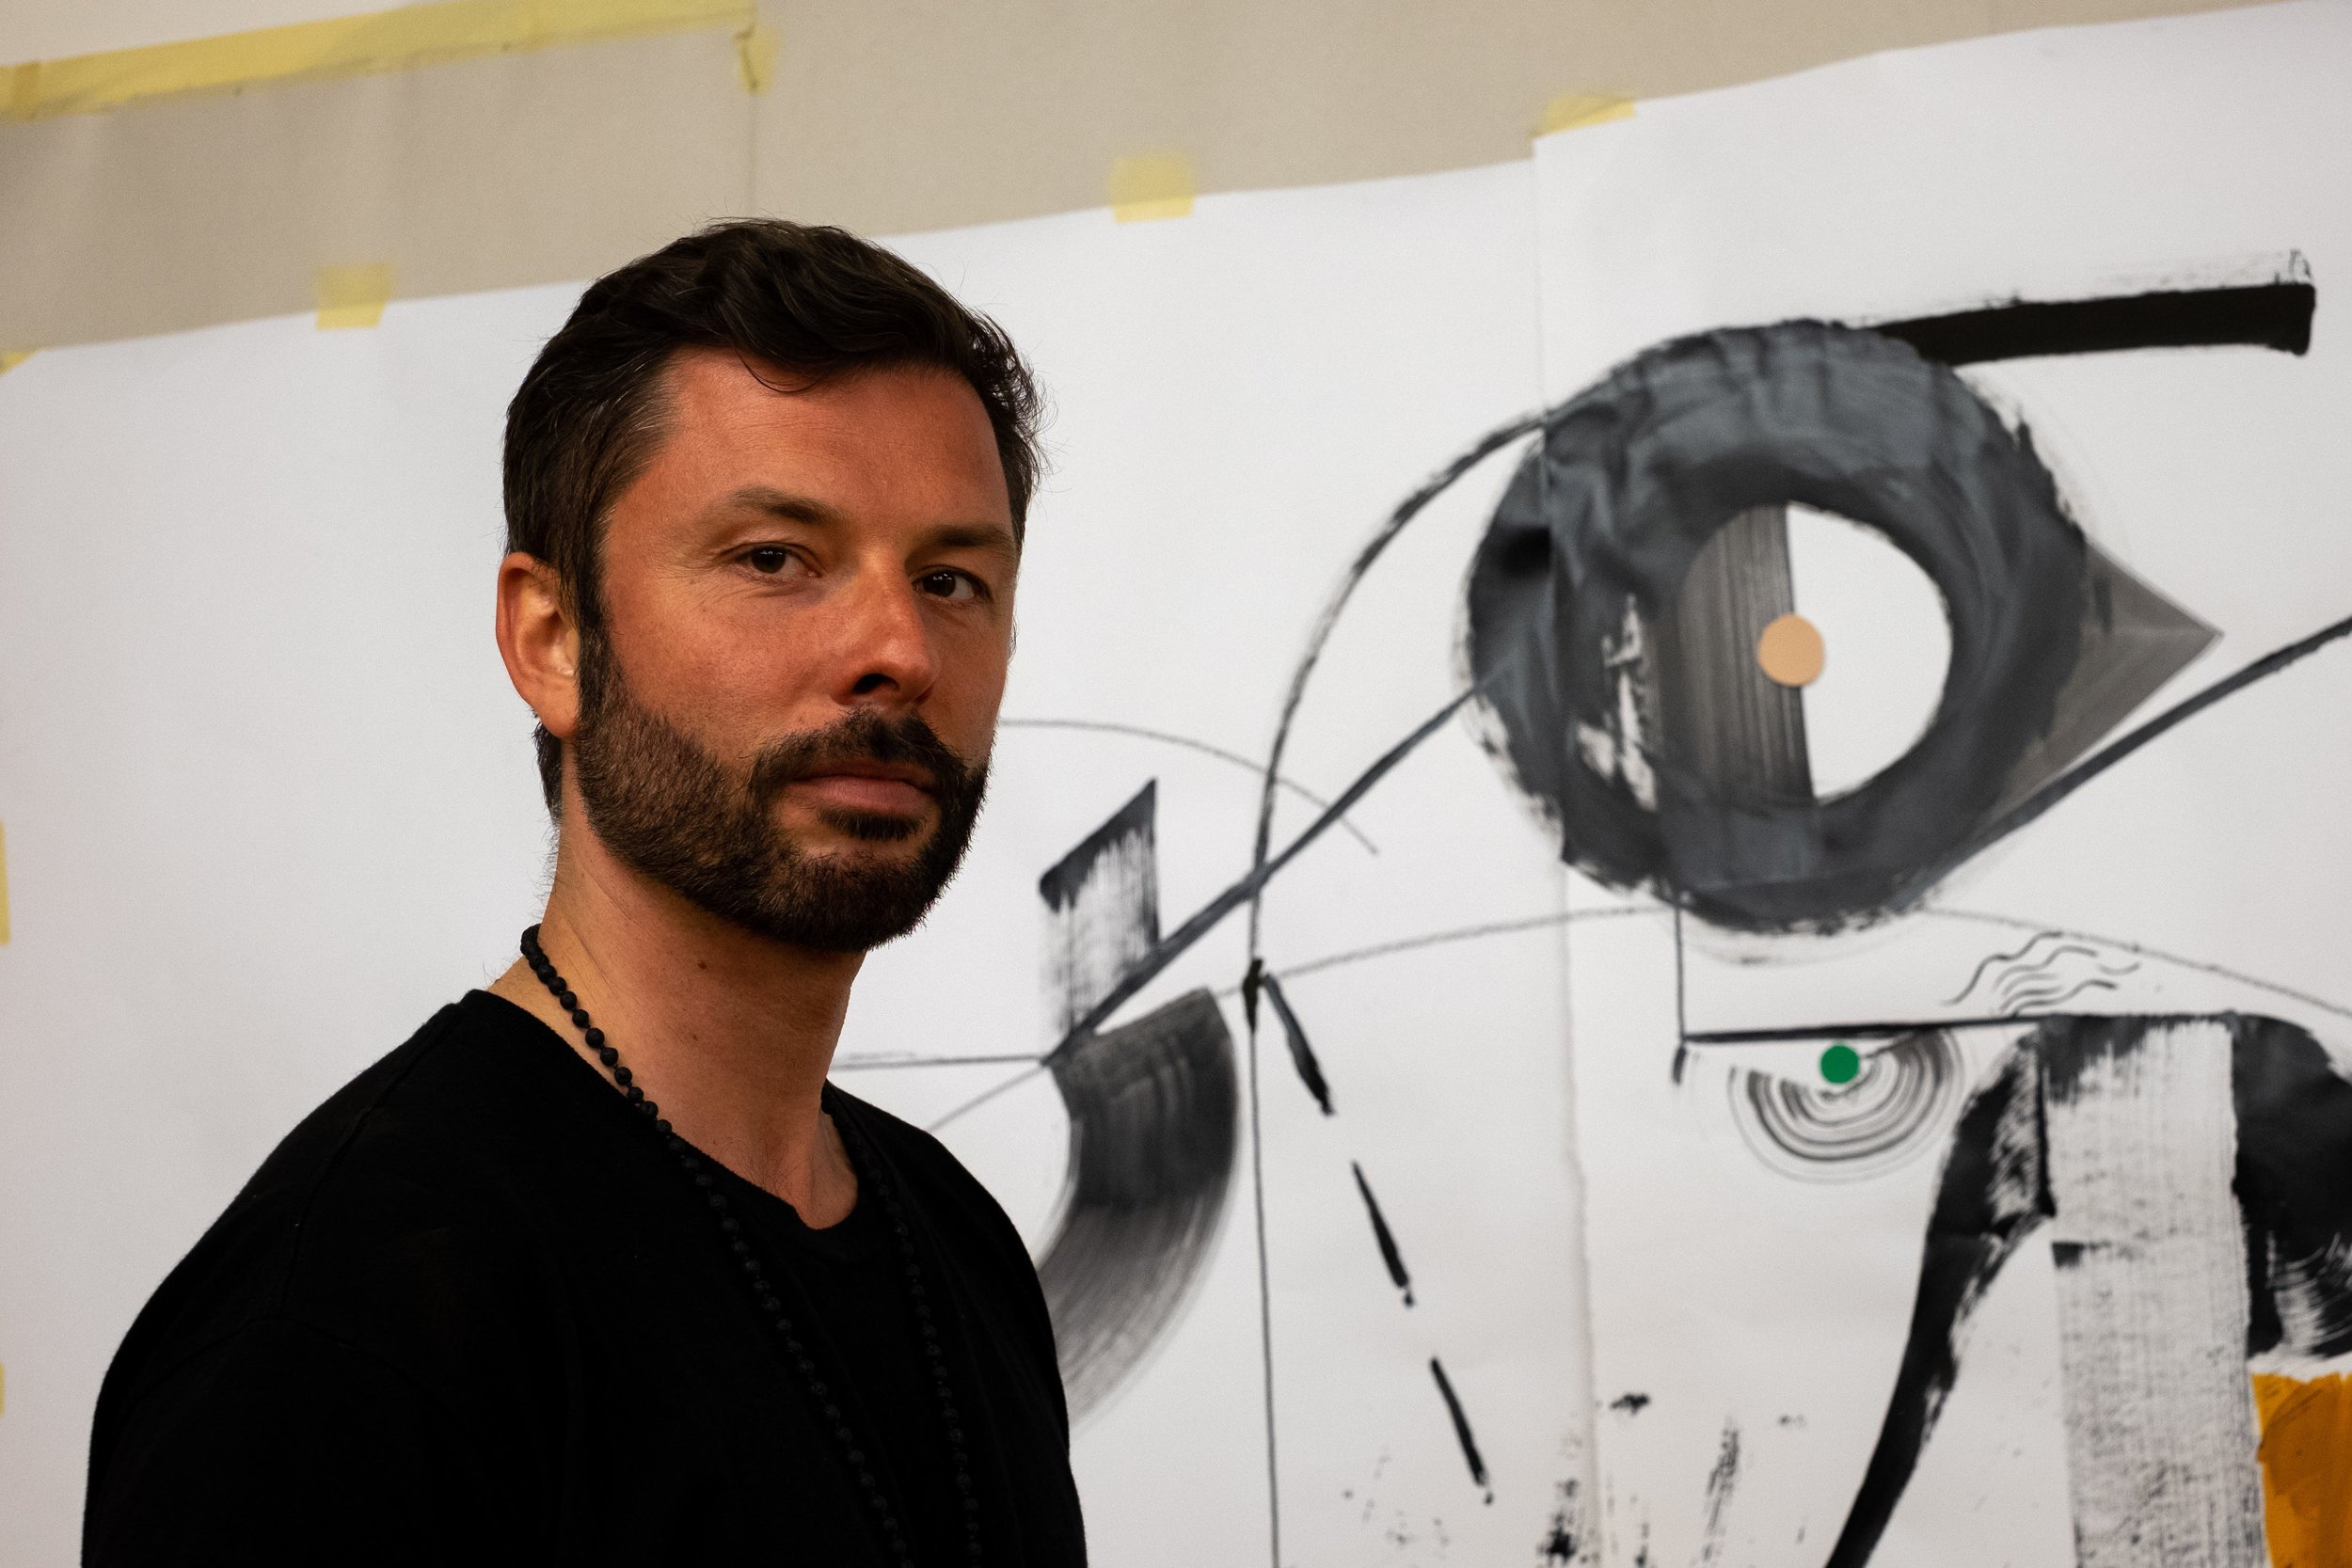 In Conversation: Tomek Sadurski on NAVIGATORS and TIDES - Entering Tomek Sadurski's studio in the heart of Chinatown was like arriving in a separate dimension dominated by the foreboding ring of Russian string orchestras and scent of Palo Santo.